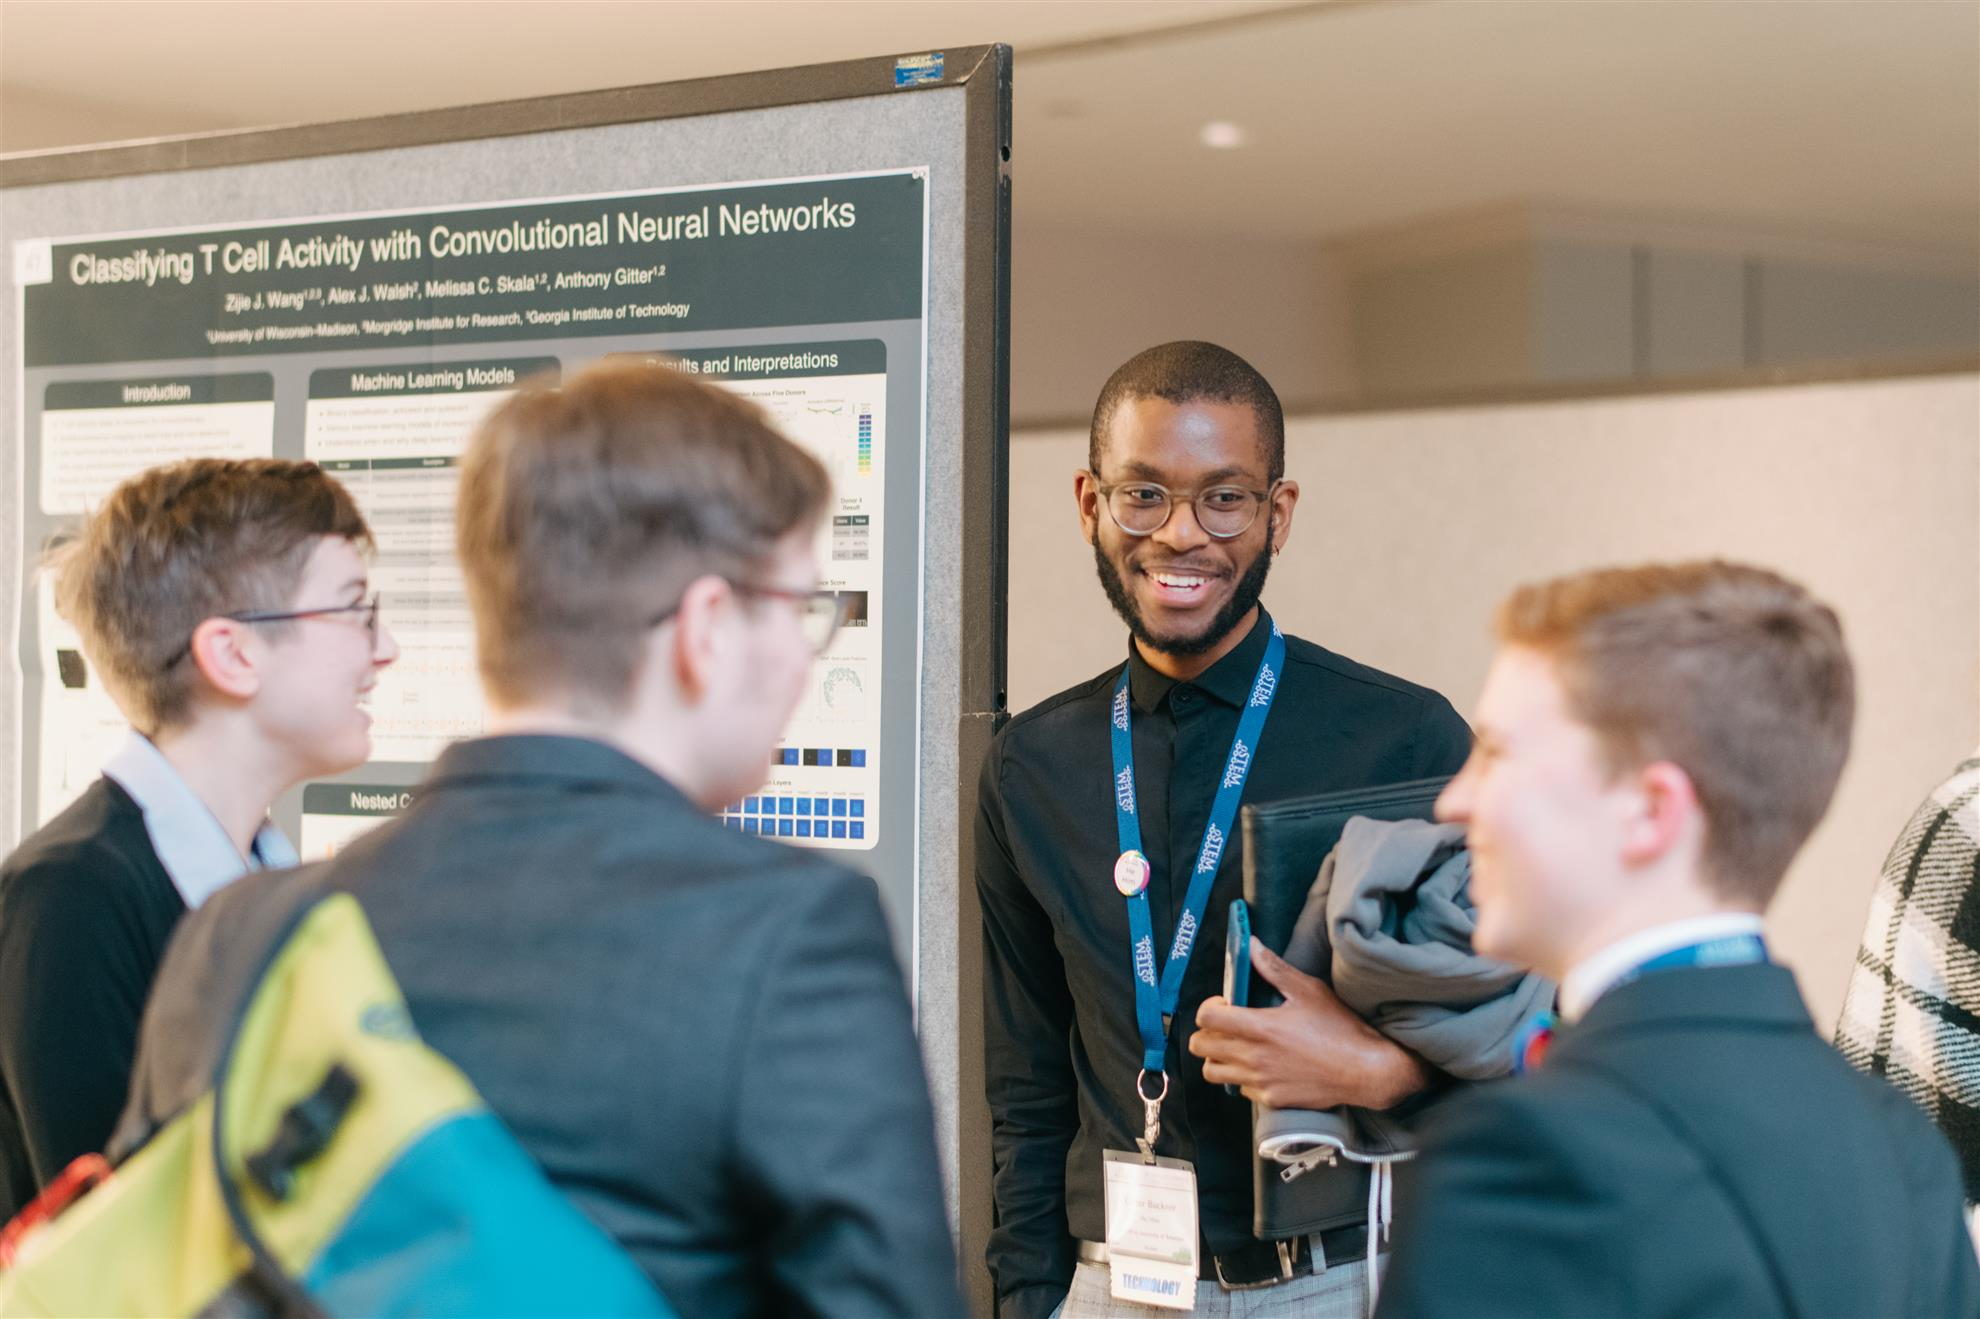 From Conference 2019, Image of people smiling in a conference area and talking